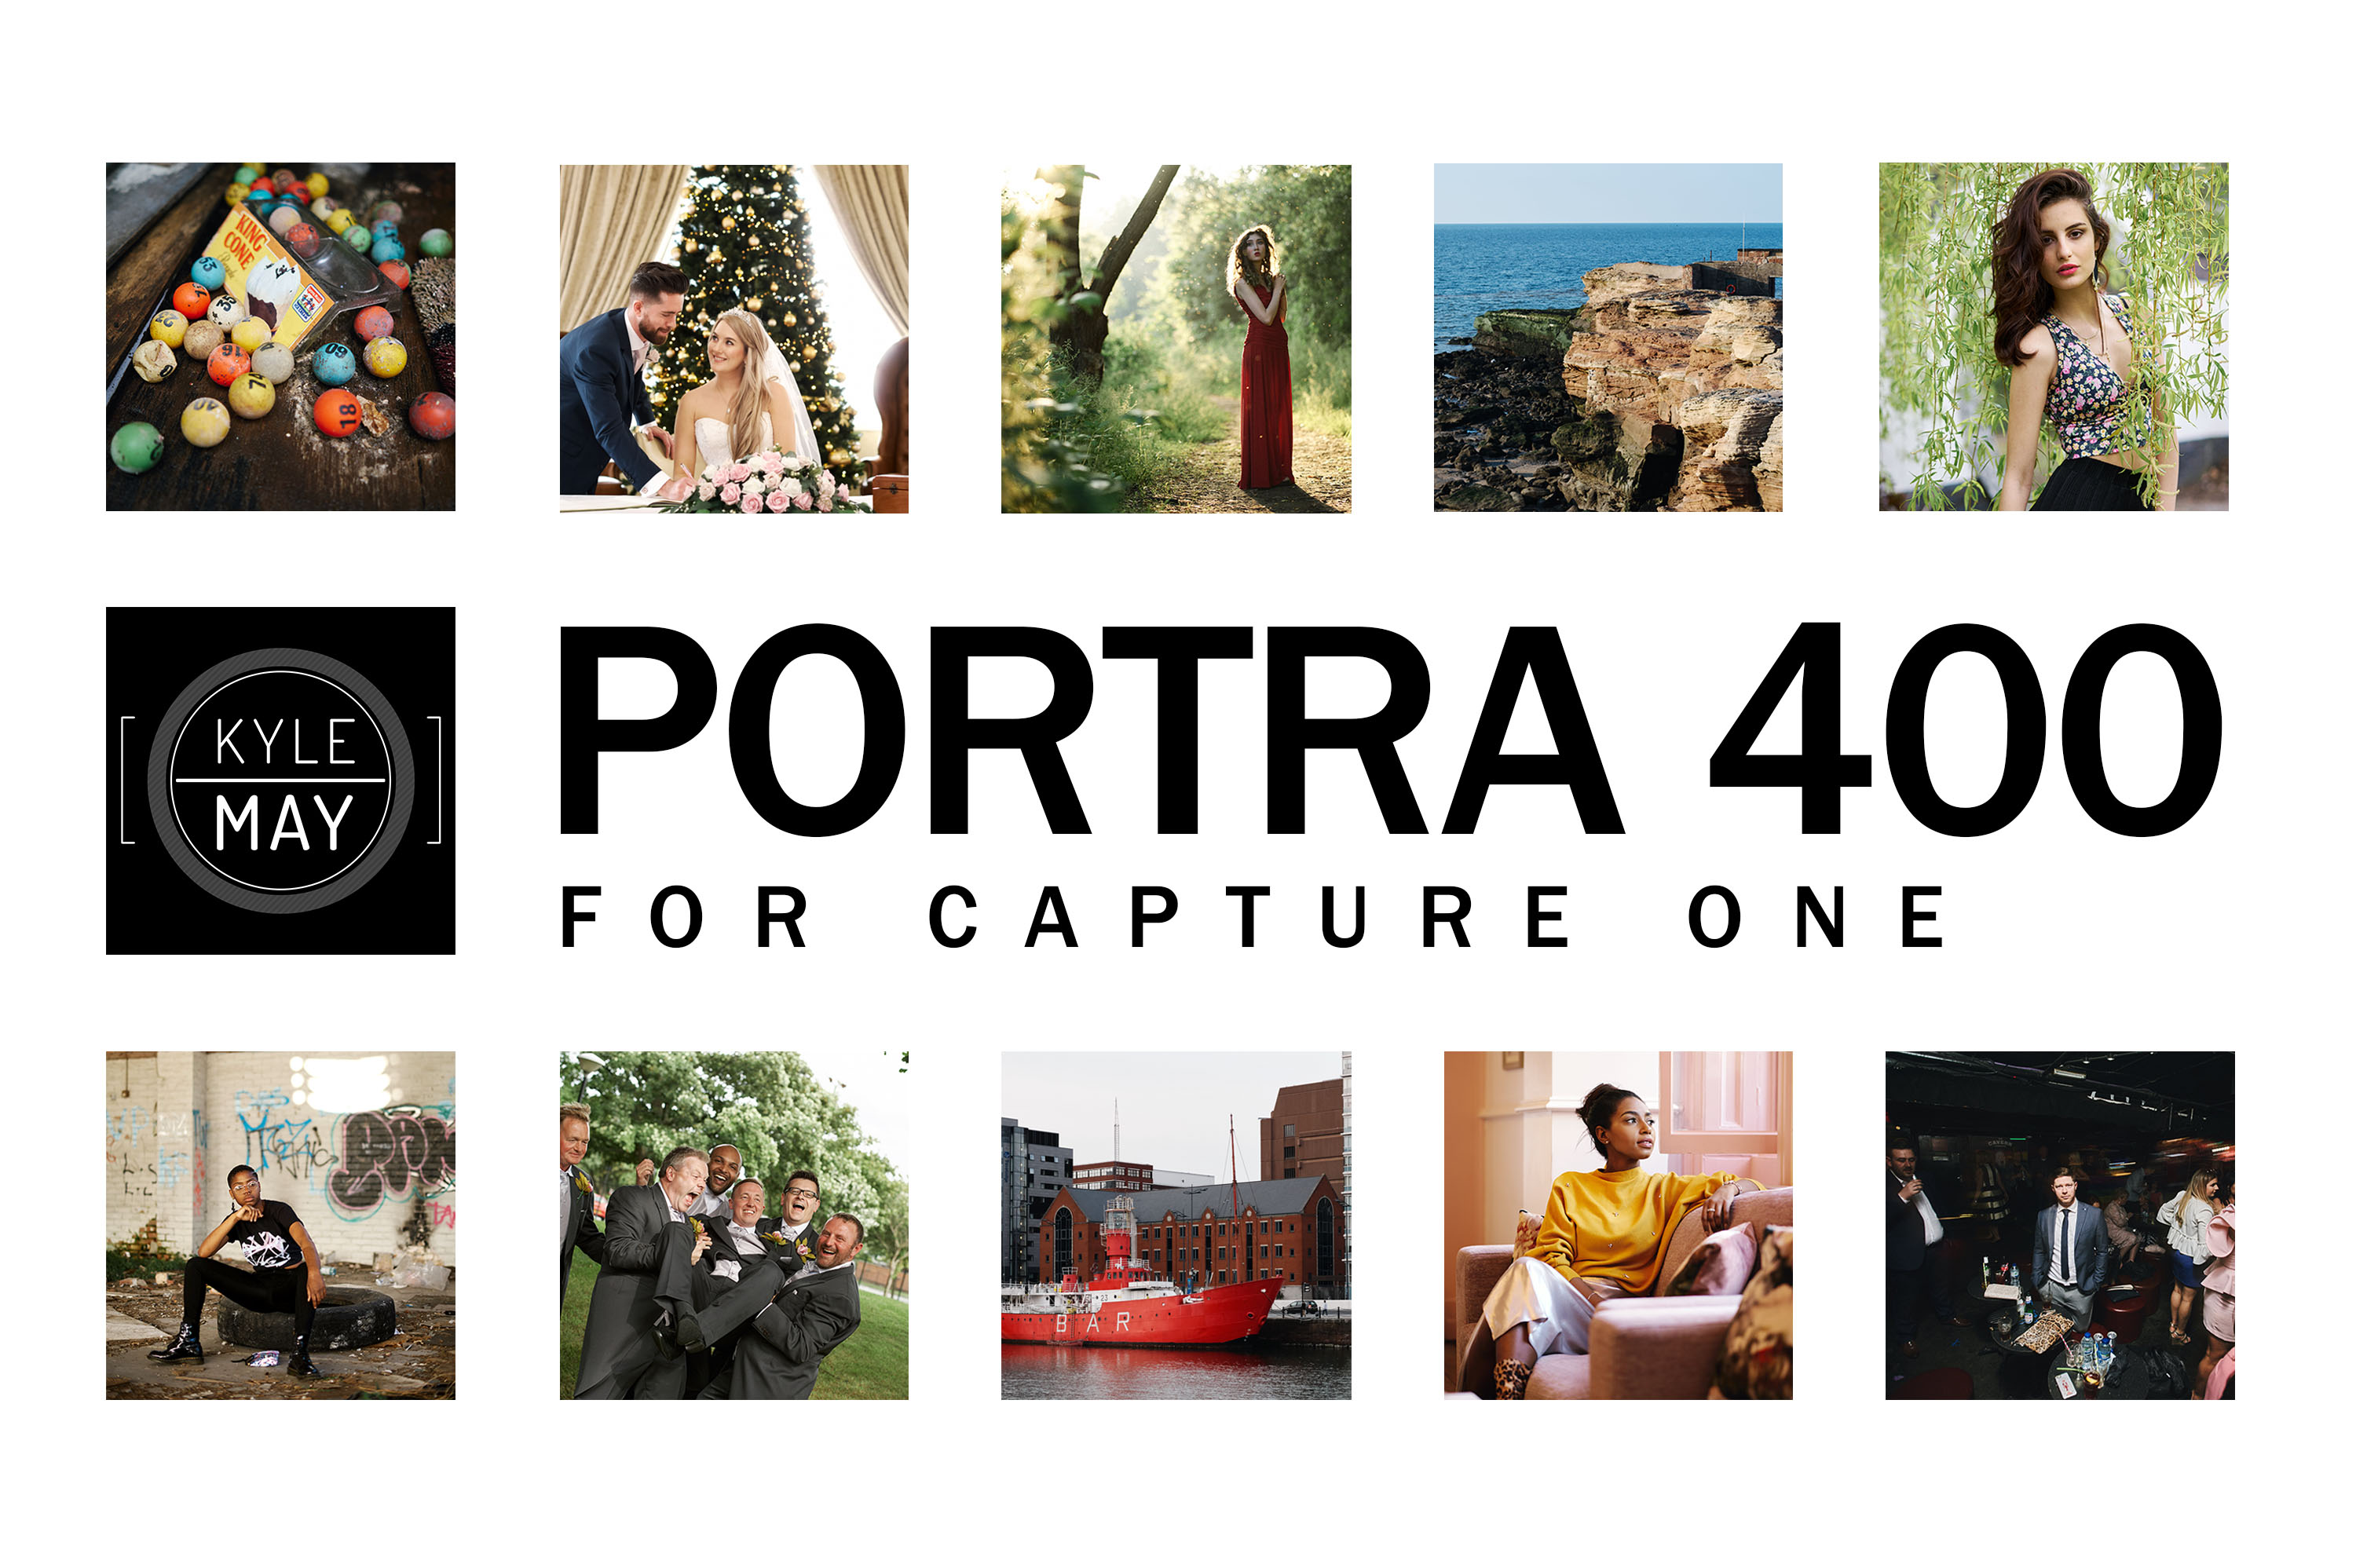 [Kyle May] The Portra 400 Styles Pack for Capture One